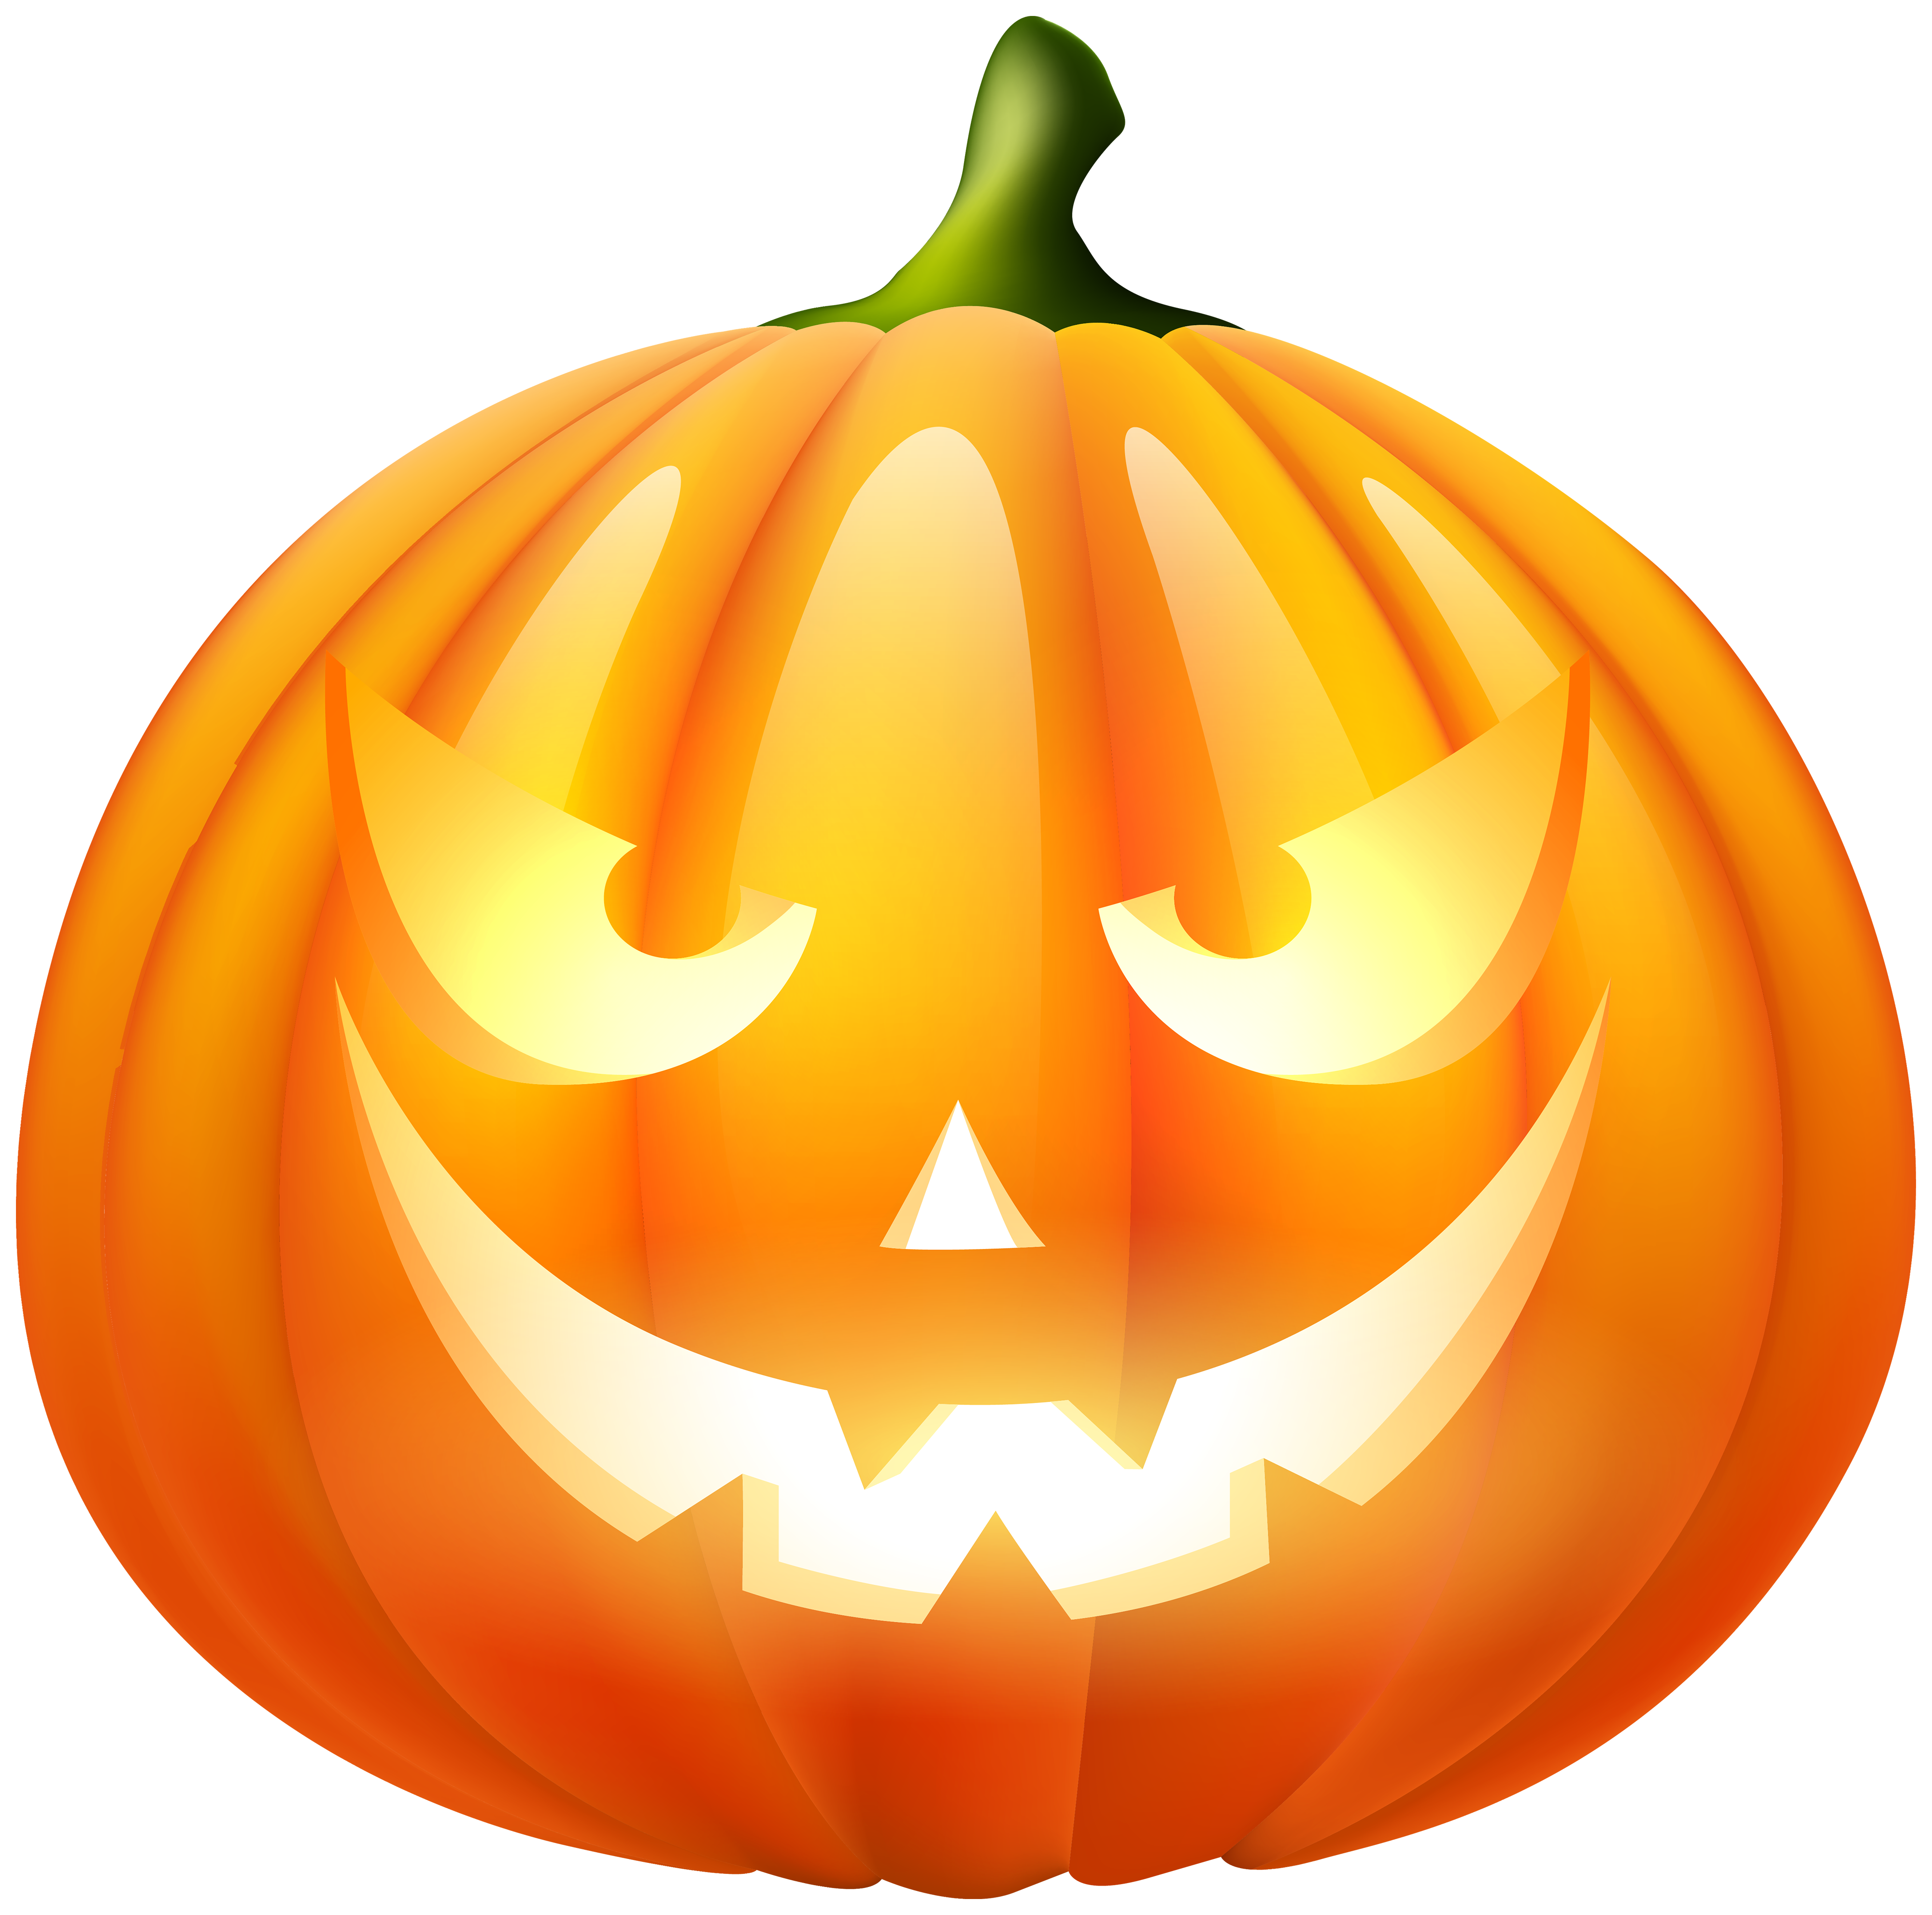 Halloween pumpkin clipart png picture free download Halloween Pumpkin PNG Clipart Image | Gallery Yopriceville - High ... picture free download